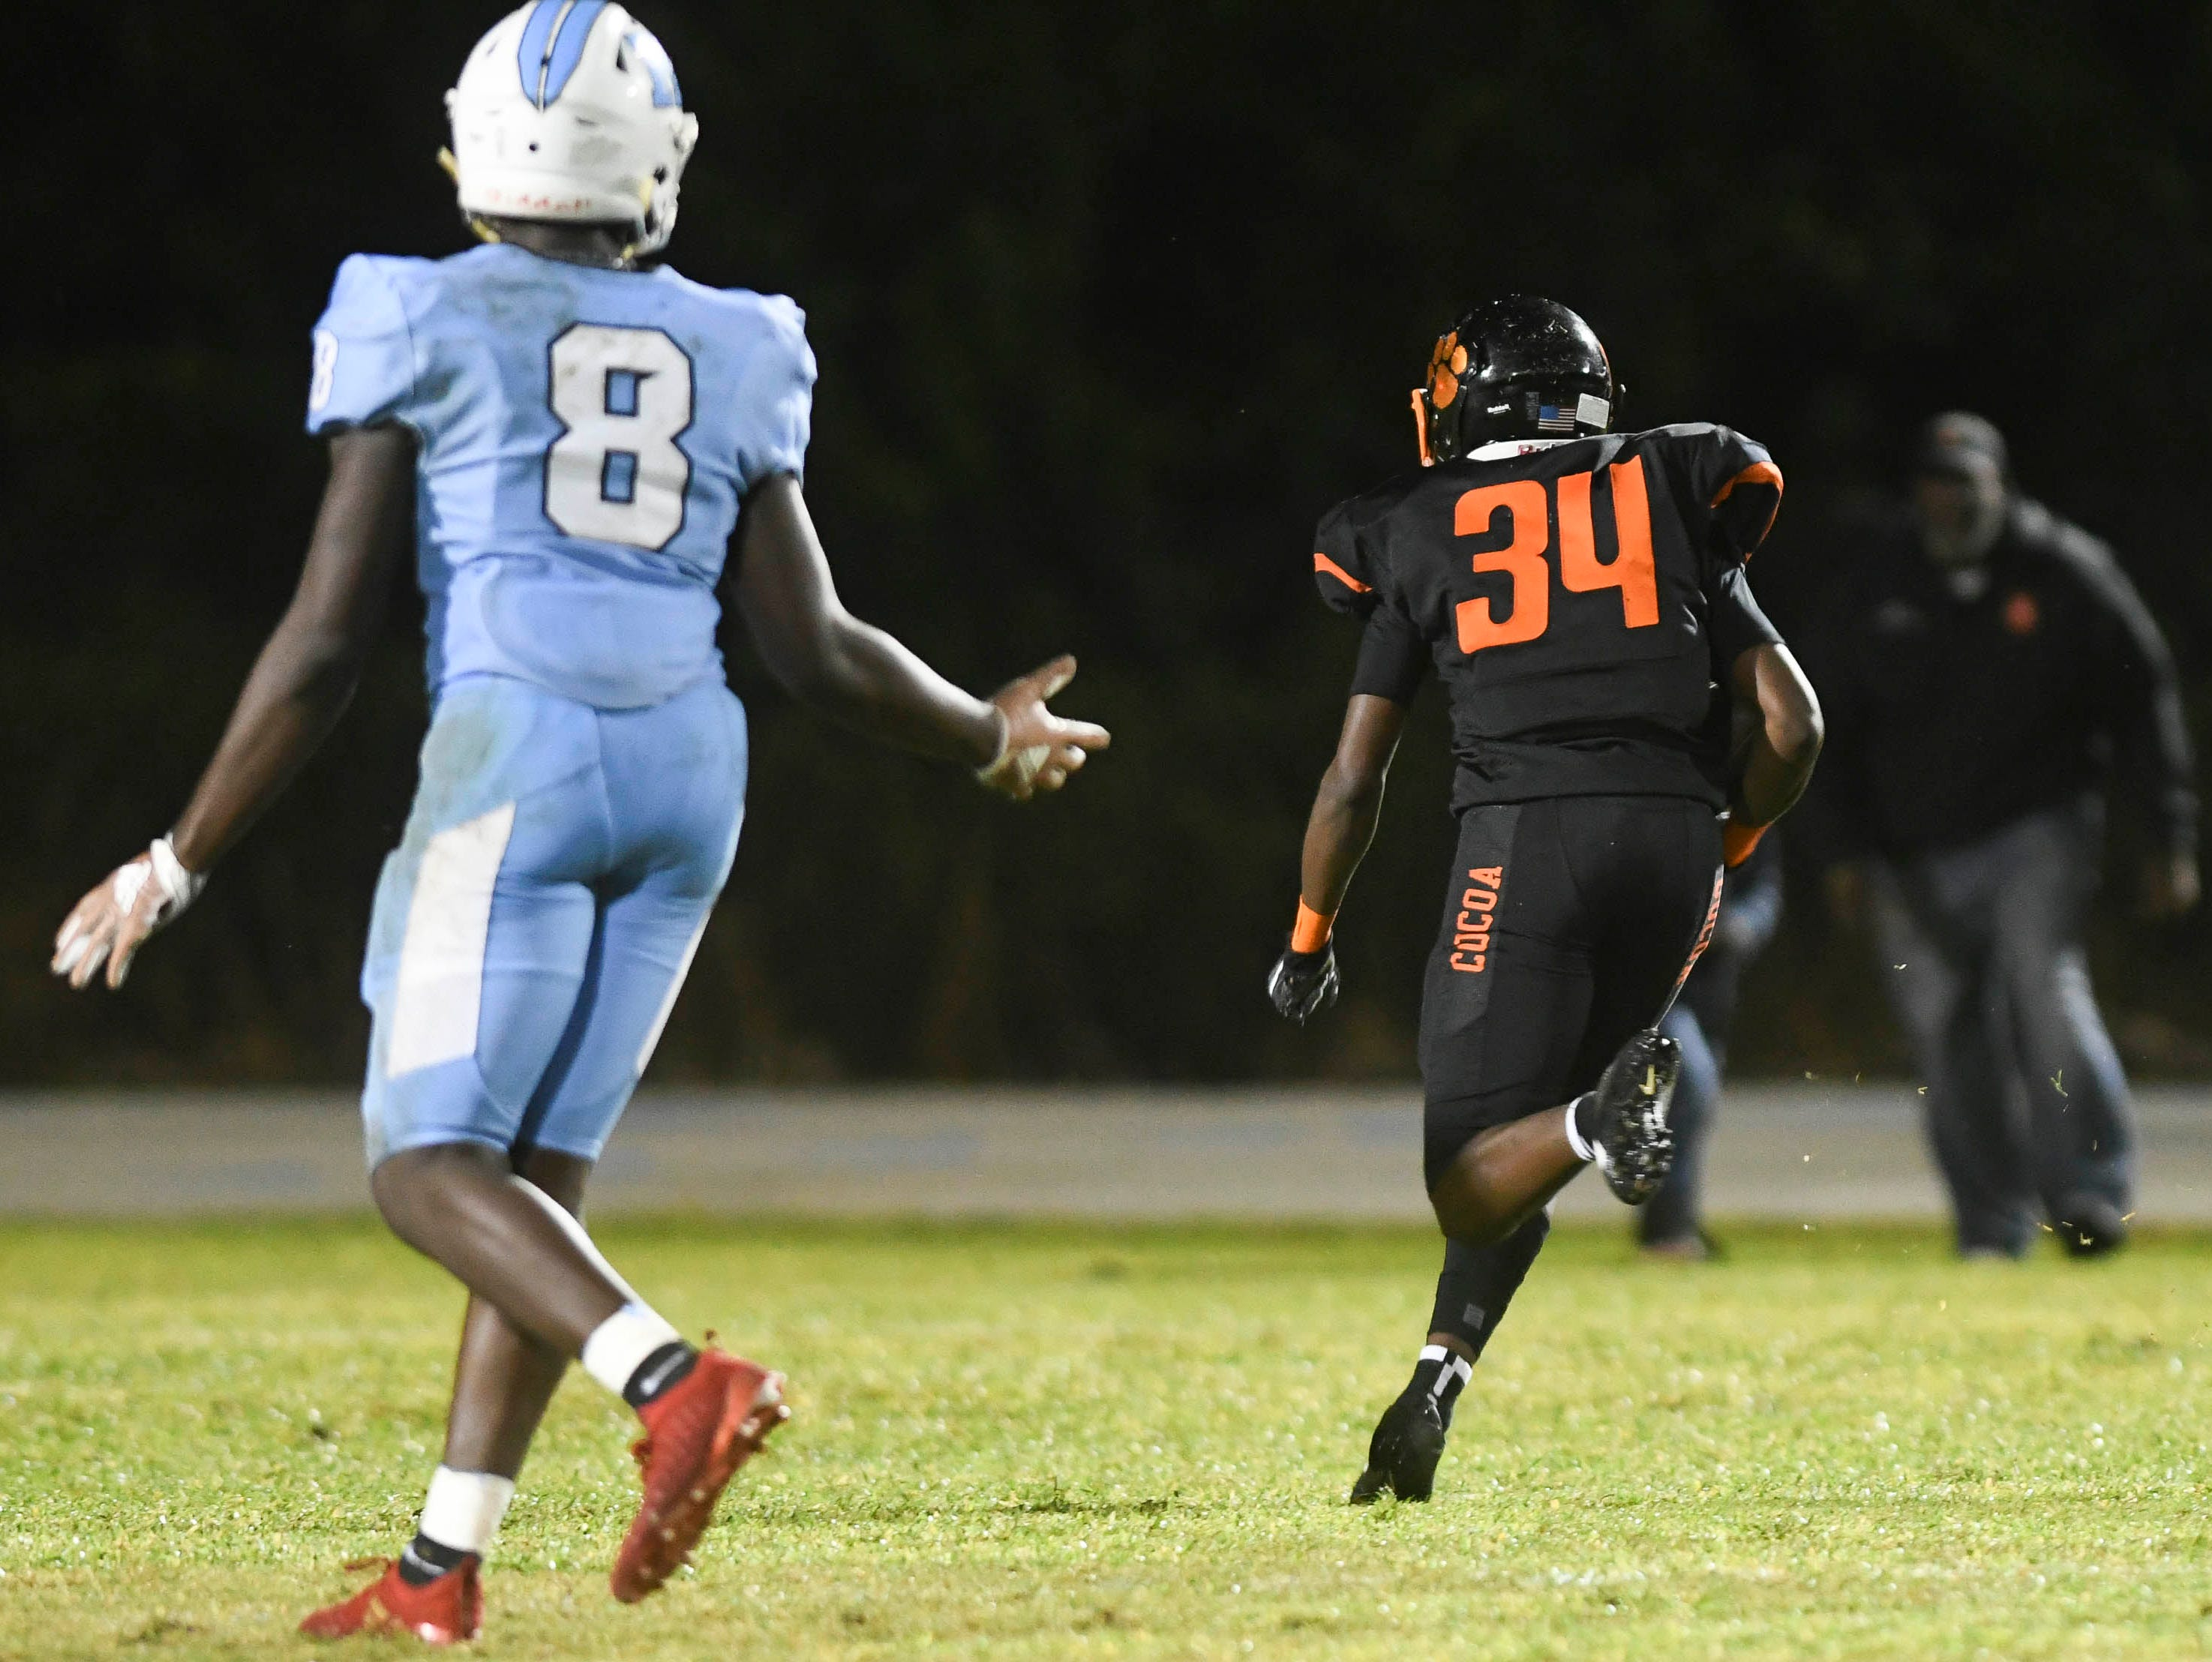 OC Brothers of Rockledge watches as Cocoa's OC Ross(34) returns an interception to the three yard line during Friday's game.